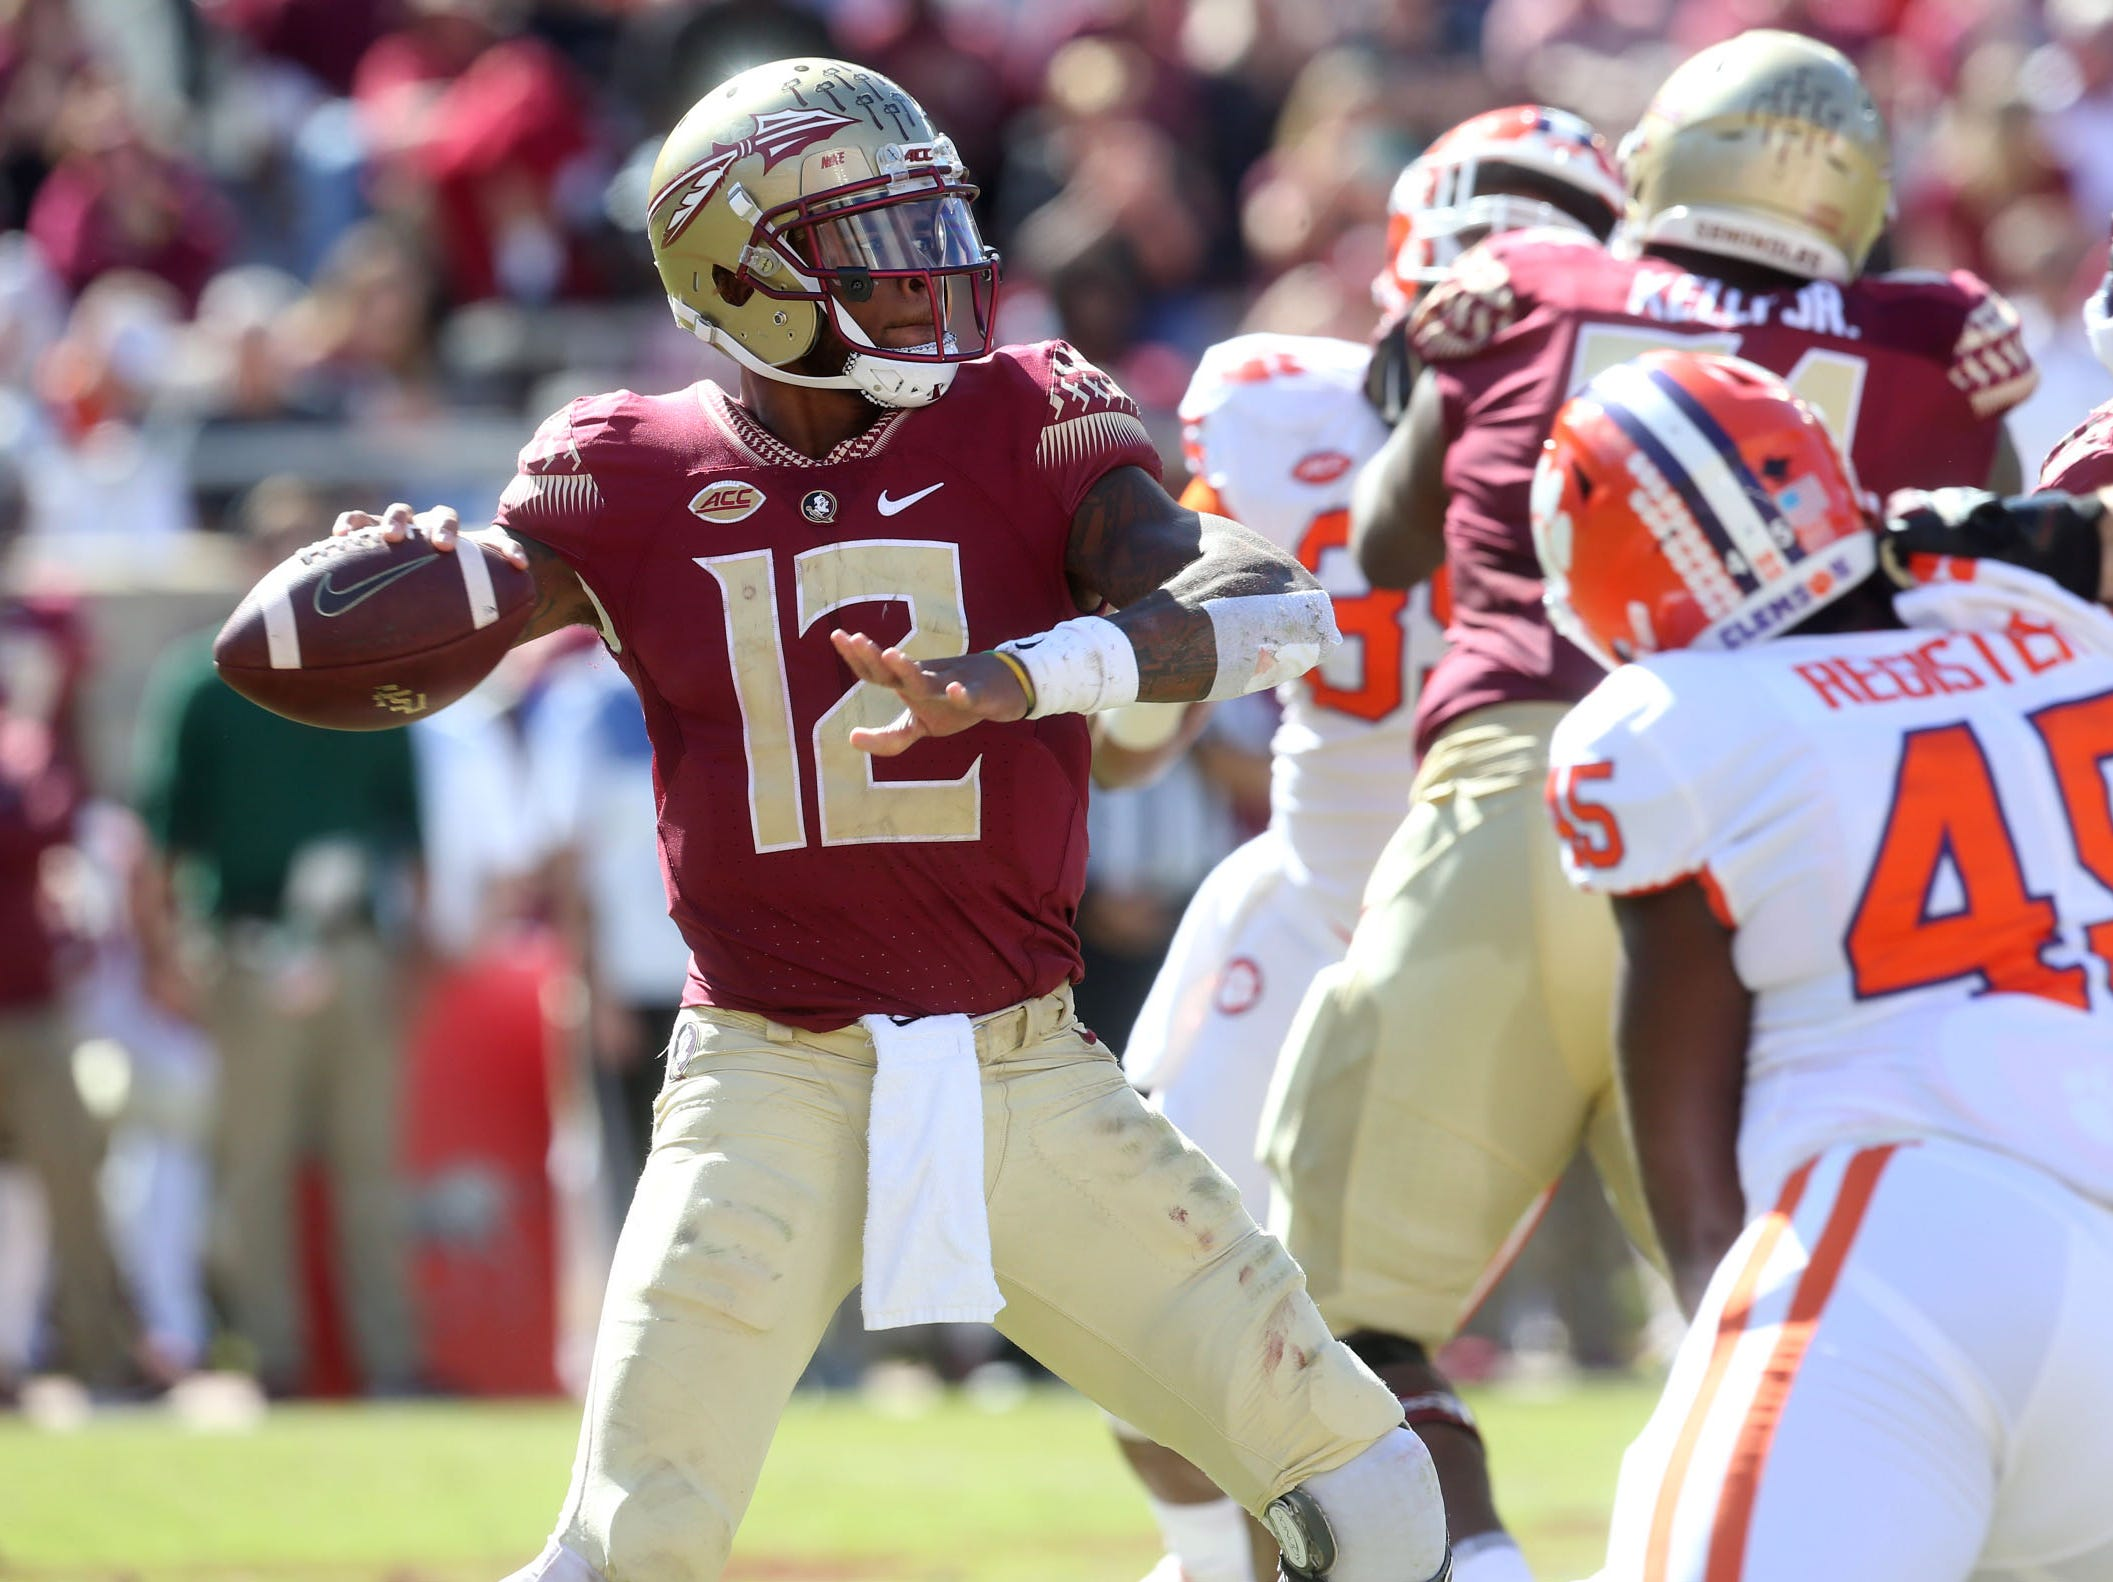 Florida State Seminoles quarterback Deondre Francois (12) looks to pass as the Florida State Seminoles take on the Clemson Tigers in college football at Doak S. Campbell Stadium on Saturday, Oct. 27, 2018.